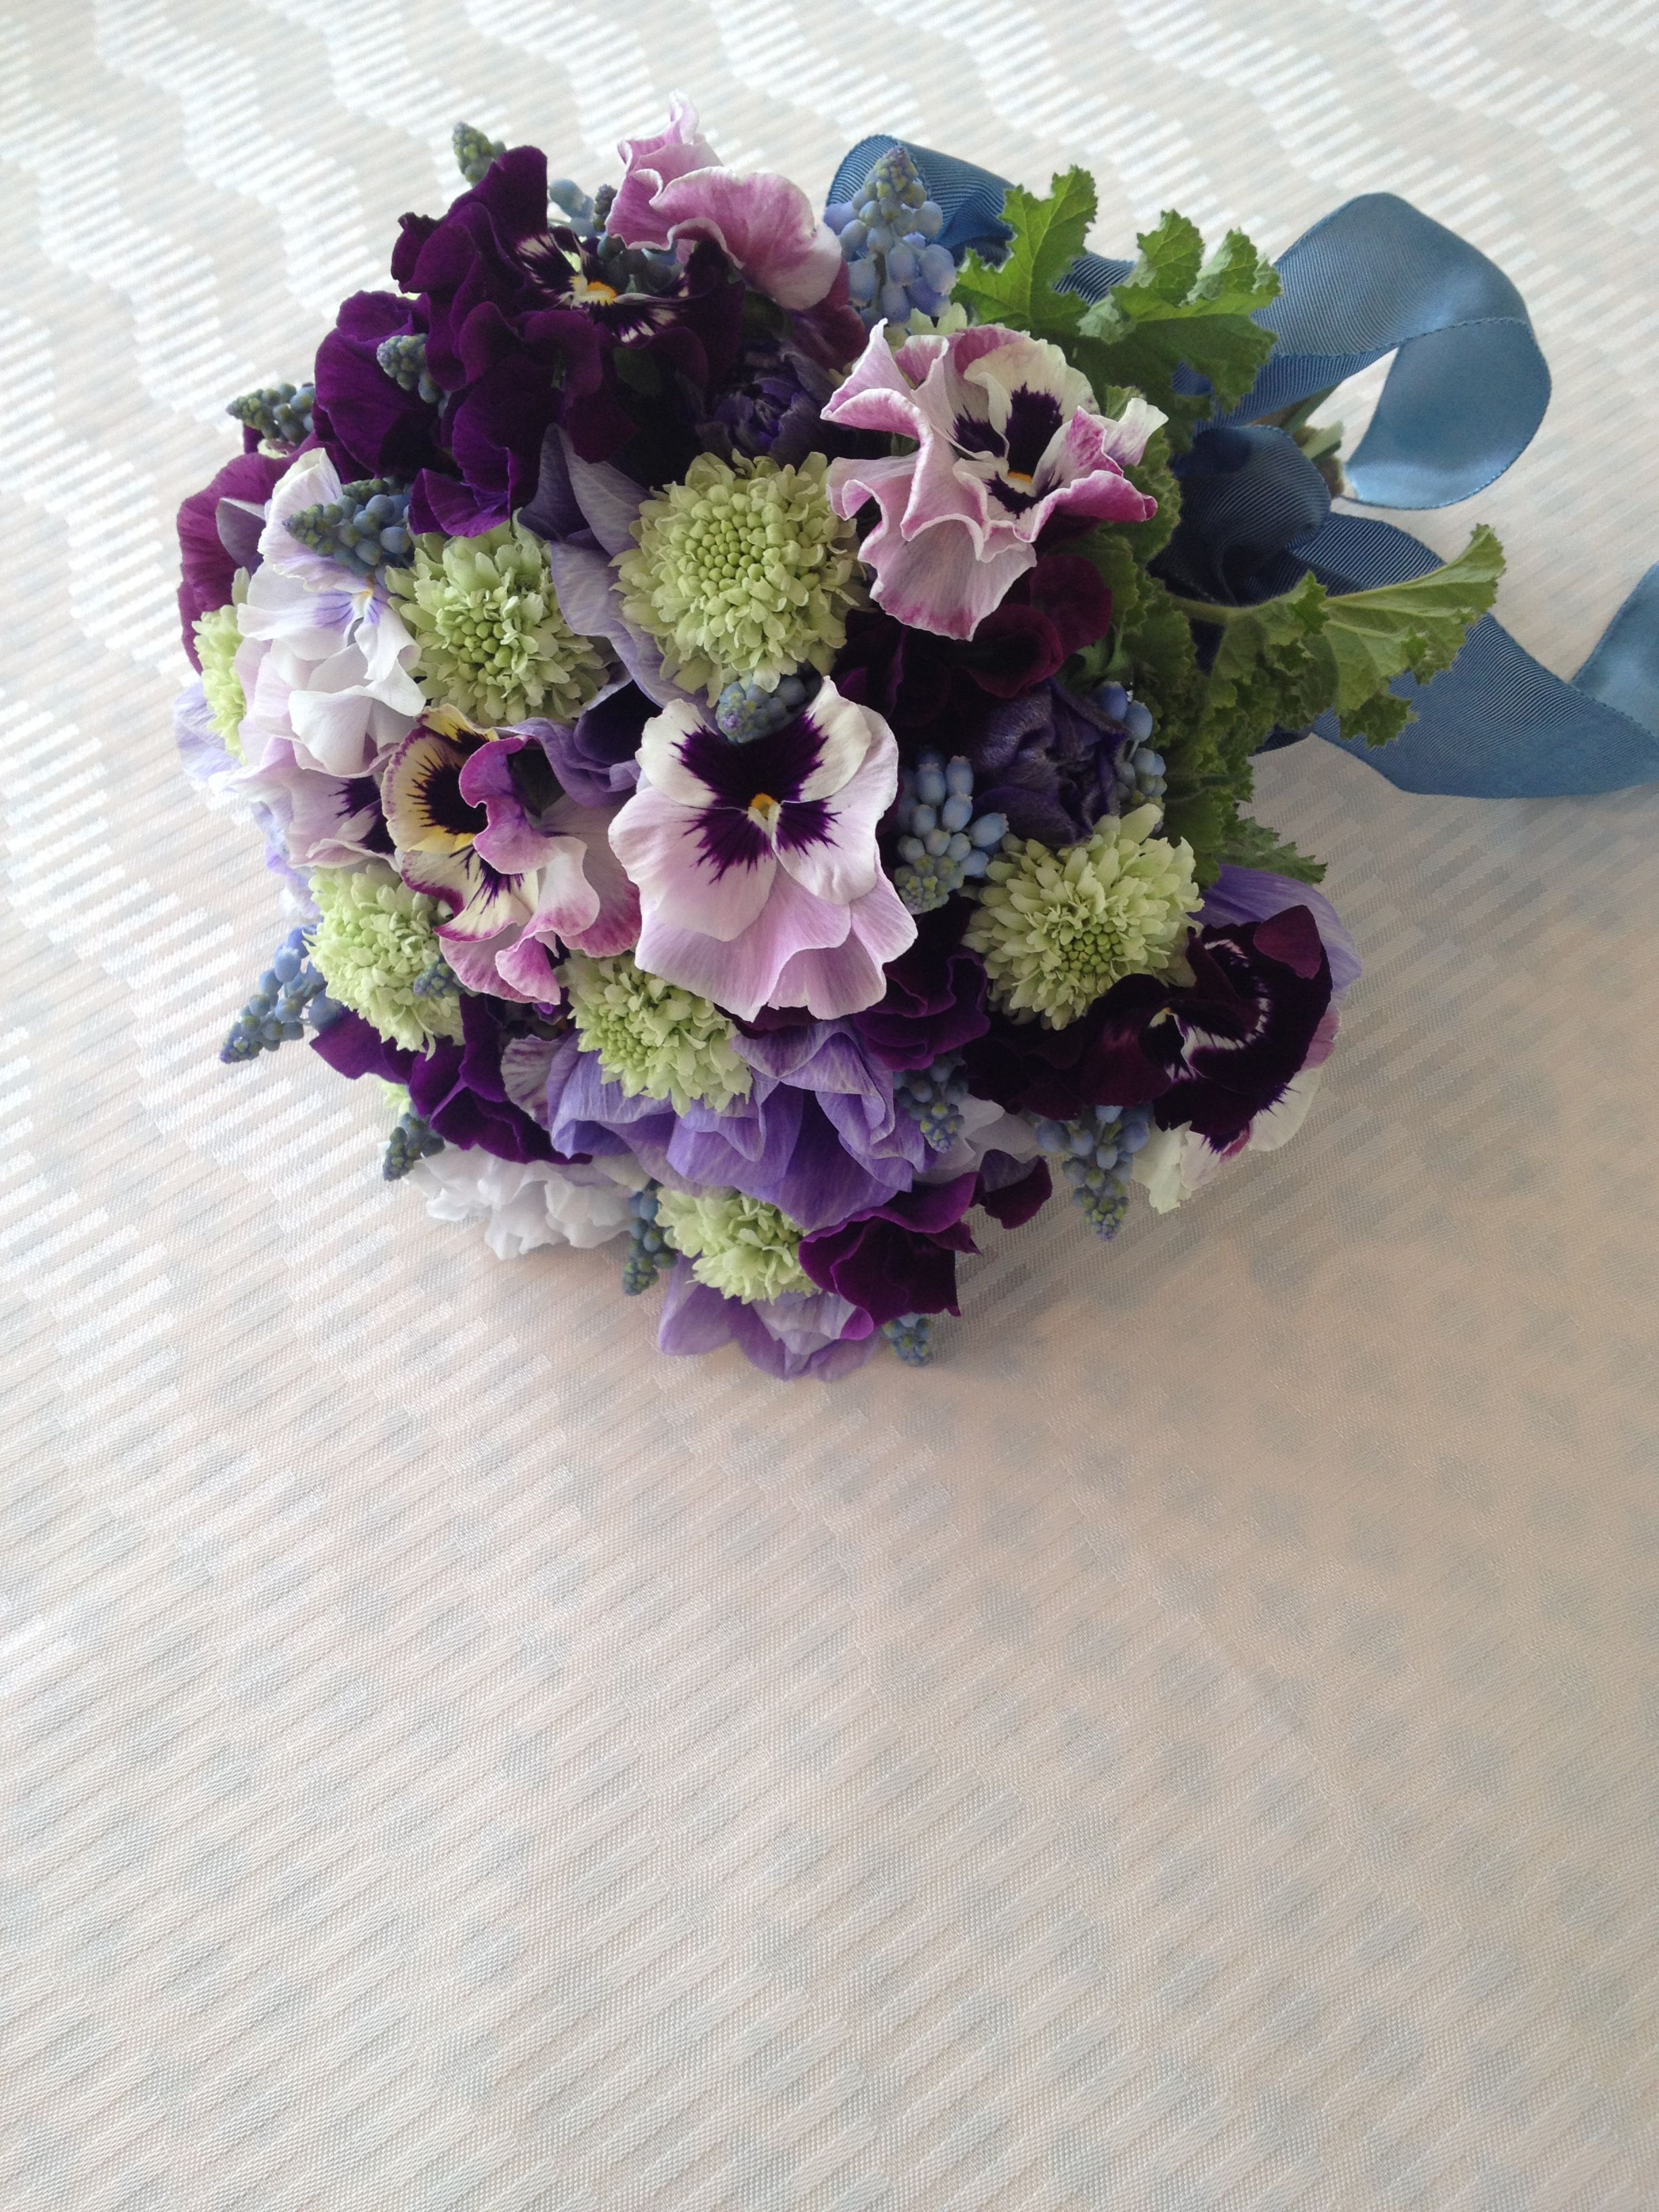 Pansy Anemone Scabiosa And Muscari Flower Bouquet Wedding Bride Flowers Beautiful Bouquet